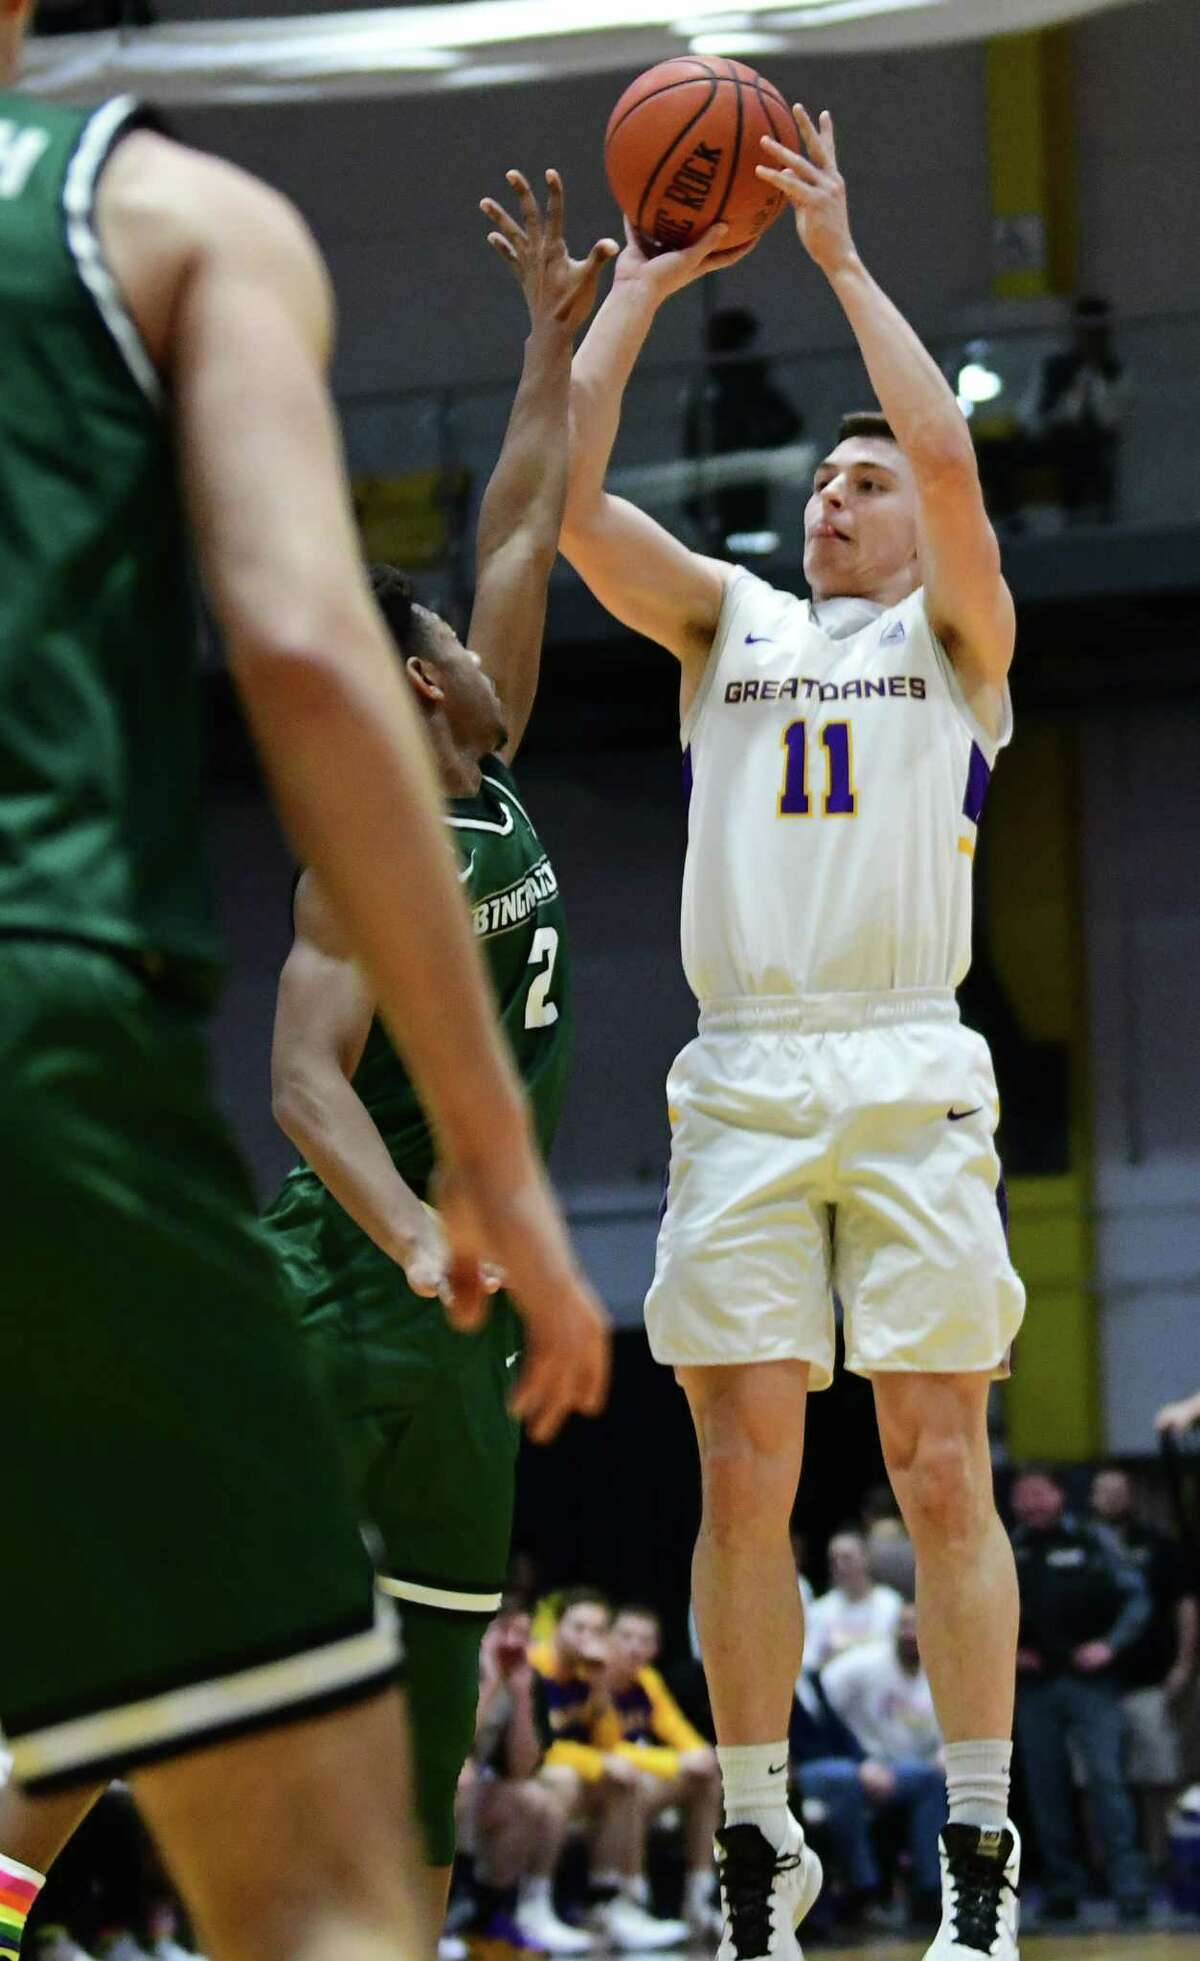 University at Albany's Cameron Healy takes a shot during a game against Binghamton at the SEFCU Arena on Wednesday, Feb. 5, 2020 in Albany, N.Y. Healy sat out for in the second half due to lower back spasms. (Lori Van Buren/Times Union)